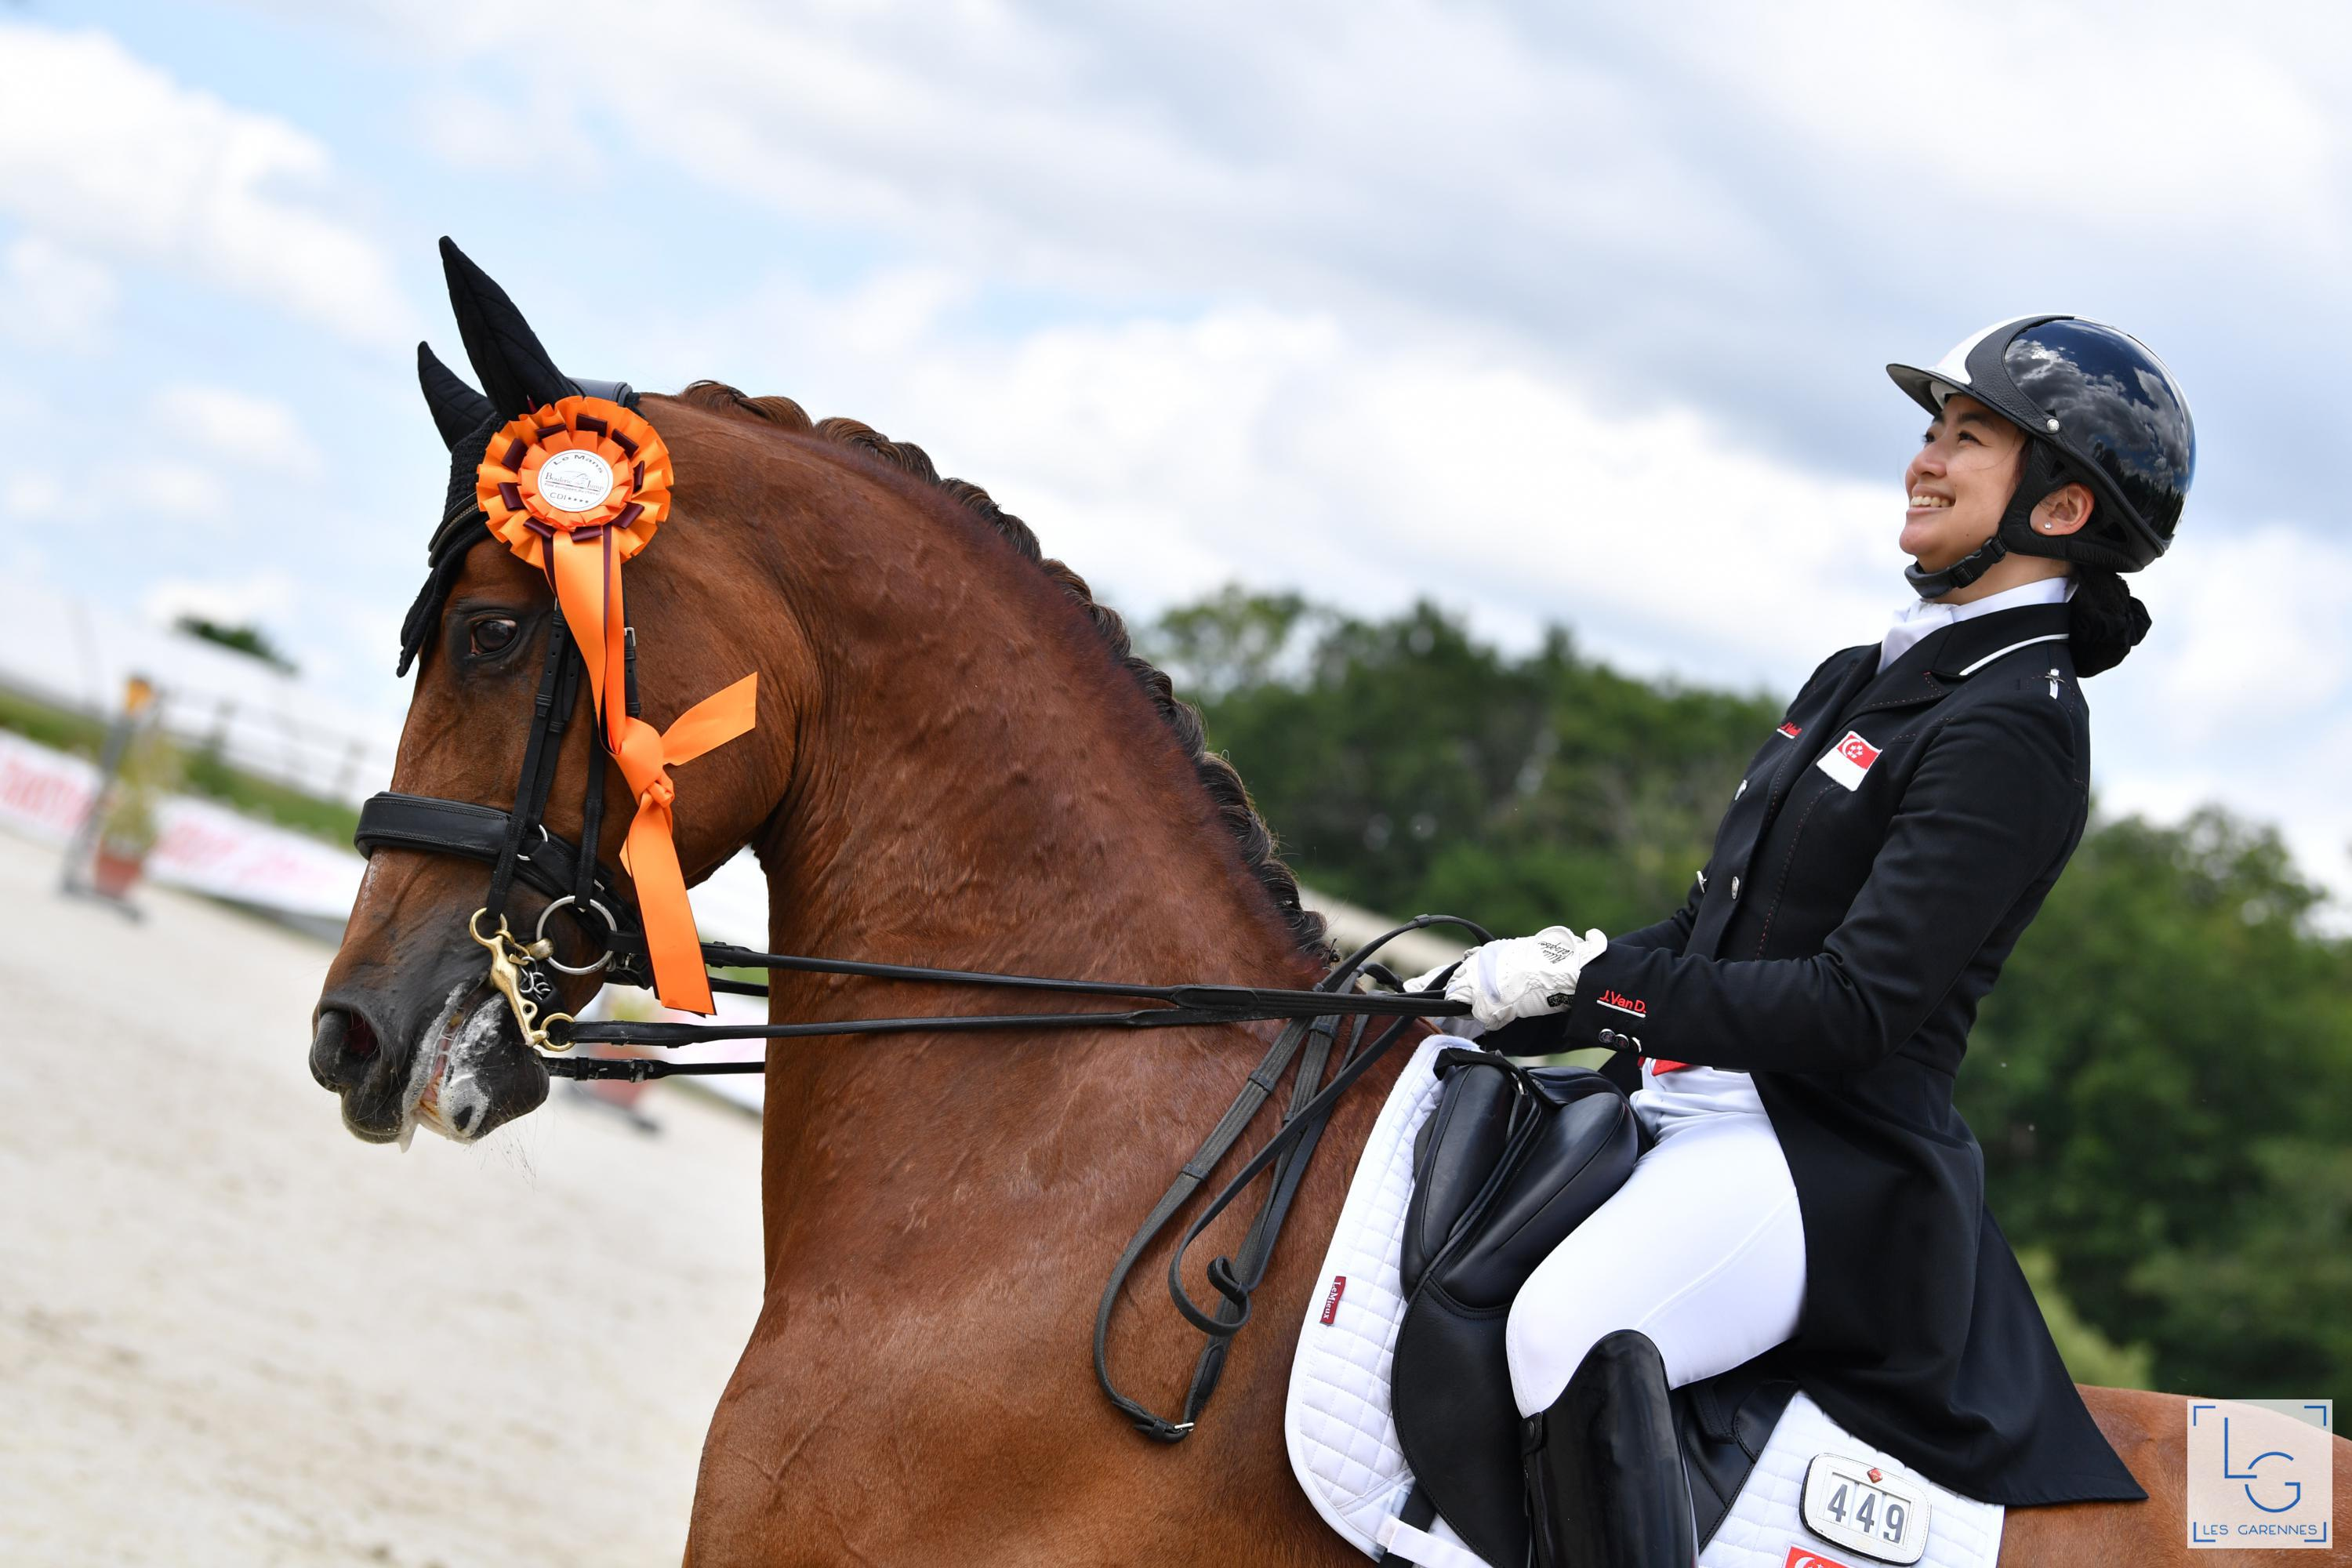 TeamSG Equestrienne Caroline Chew : After a journey of 6 years, I'm just weeks away from achieving my Olympic dream!